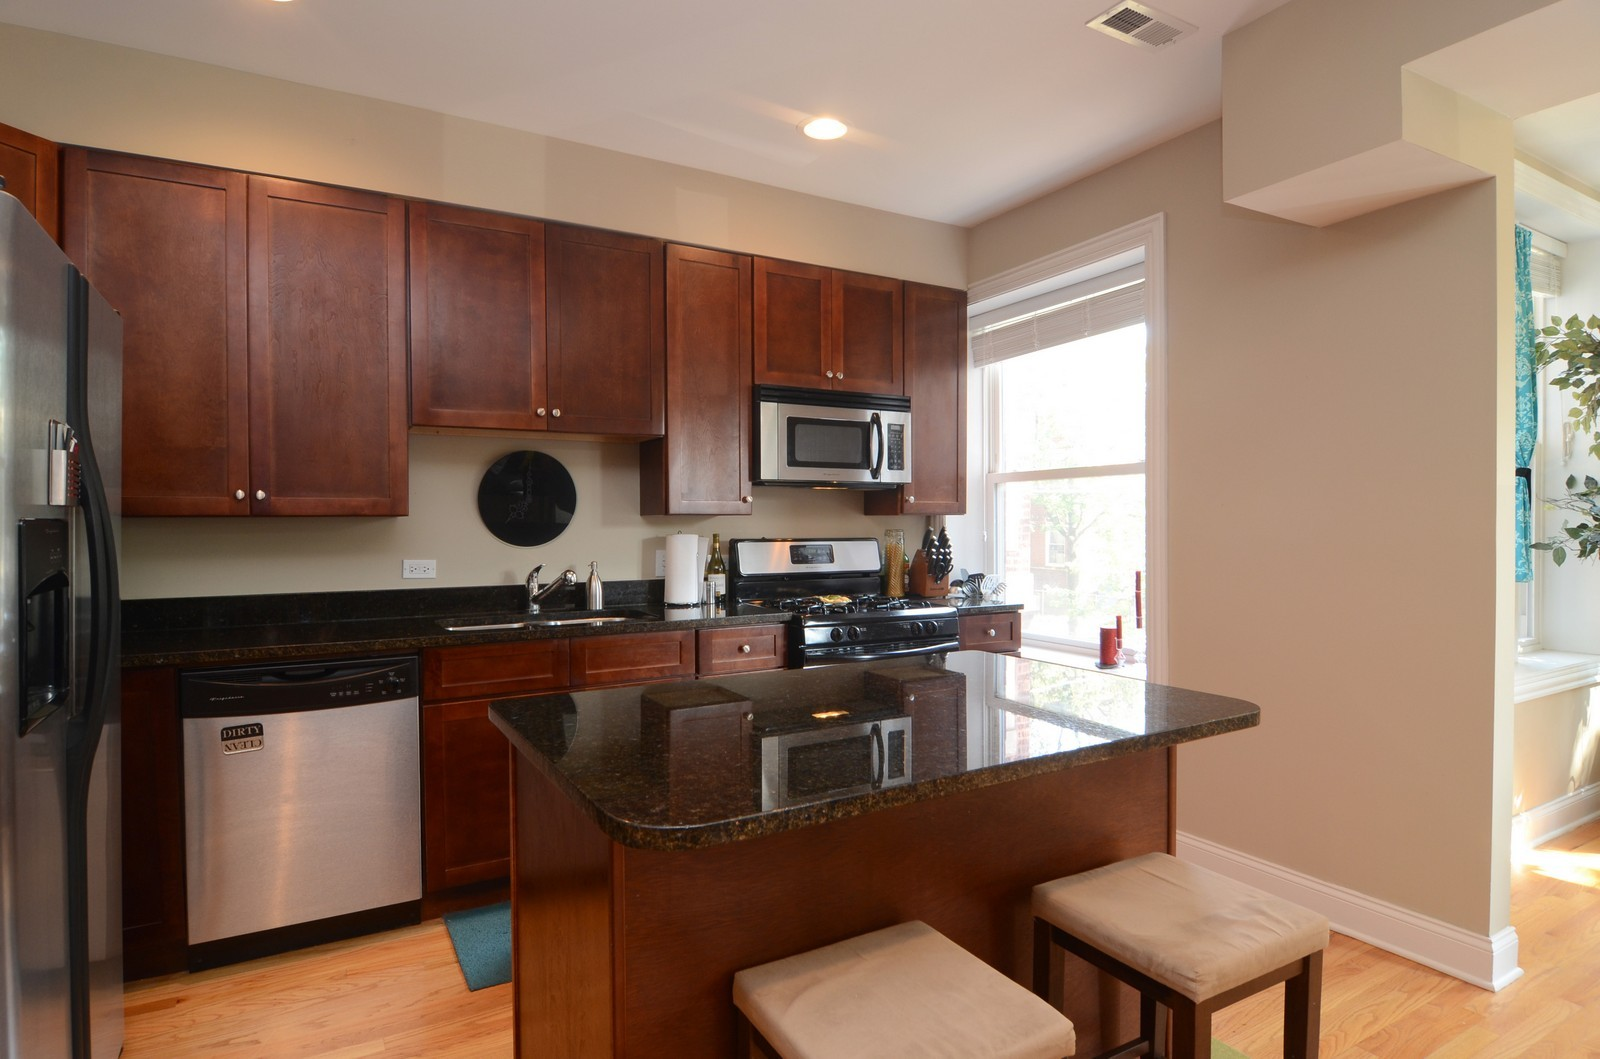 Real Estate Photography - 3516 W. Leland Ave, 1, Chicago, IL, 60625 - Kitchen